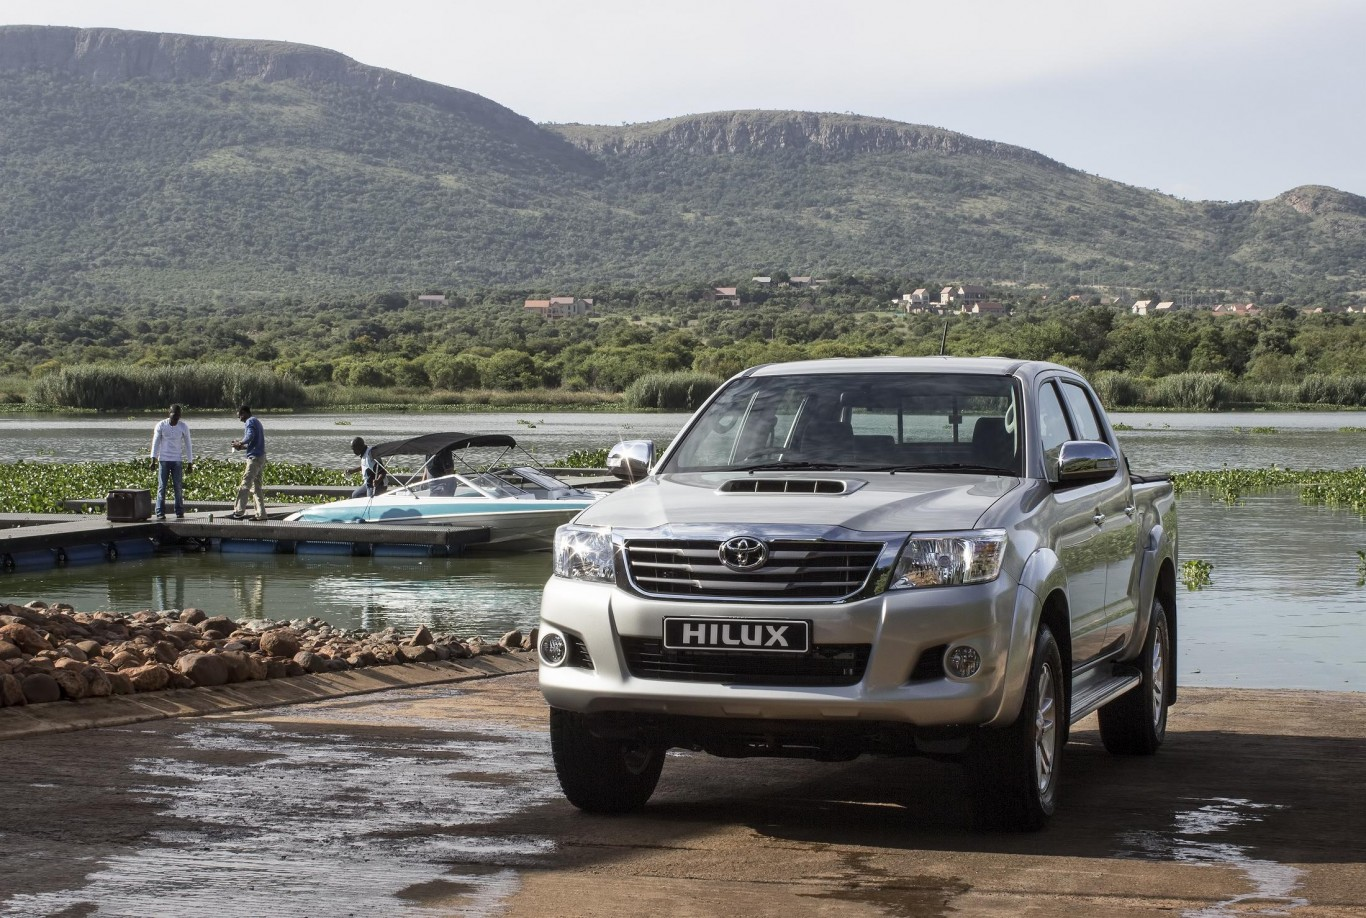 New 2 5 VNT Diesel Engine for the Toyota Hilux | Insurance Chat